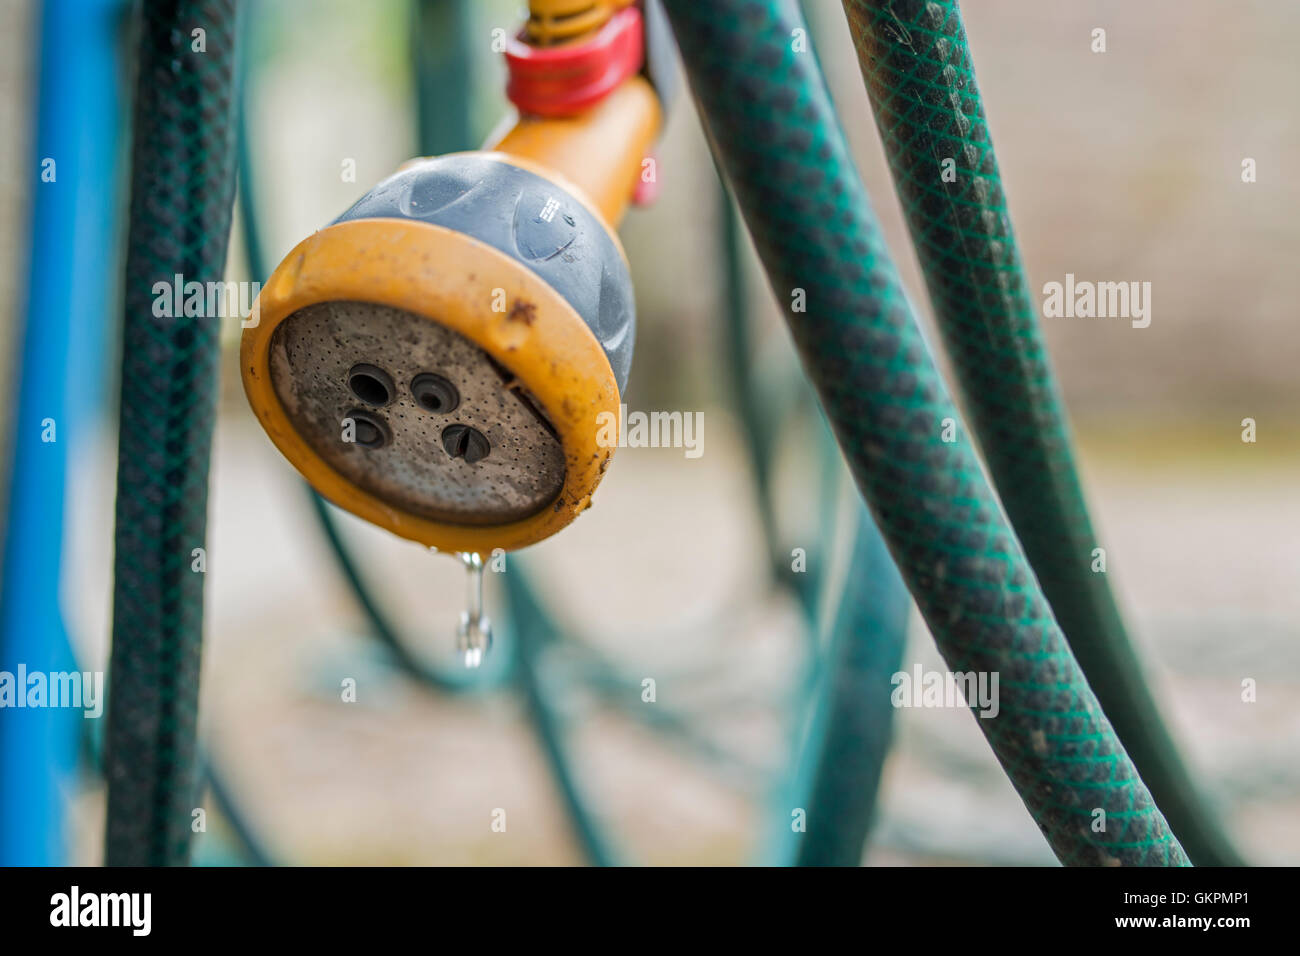 Garden hose and trigger head. - Stock Image